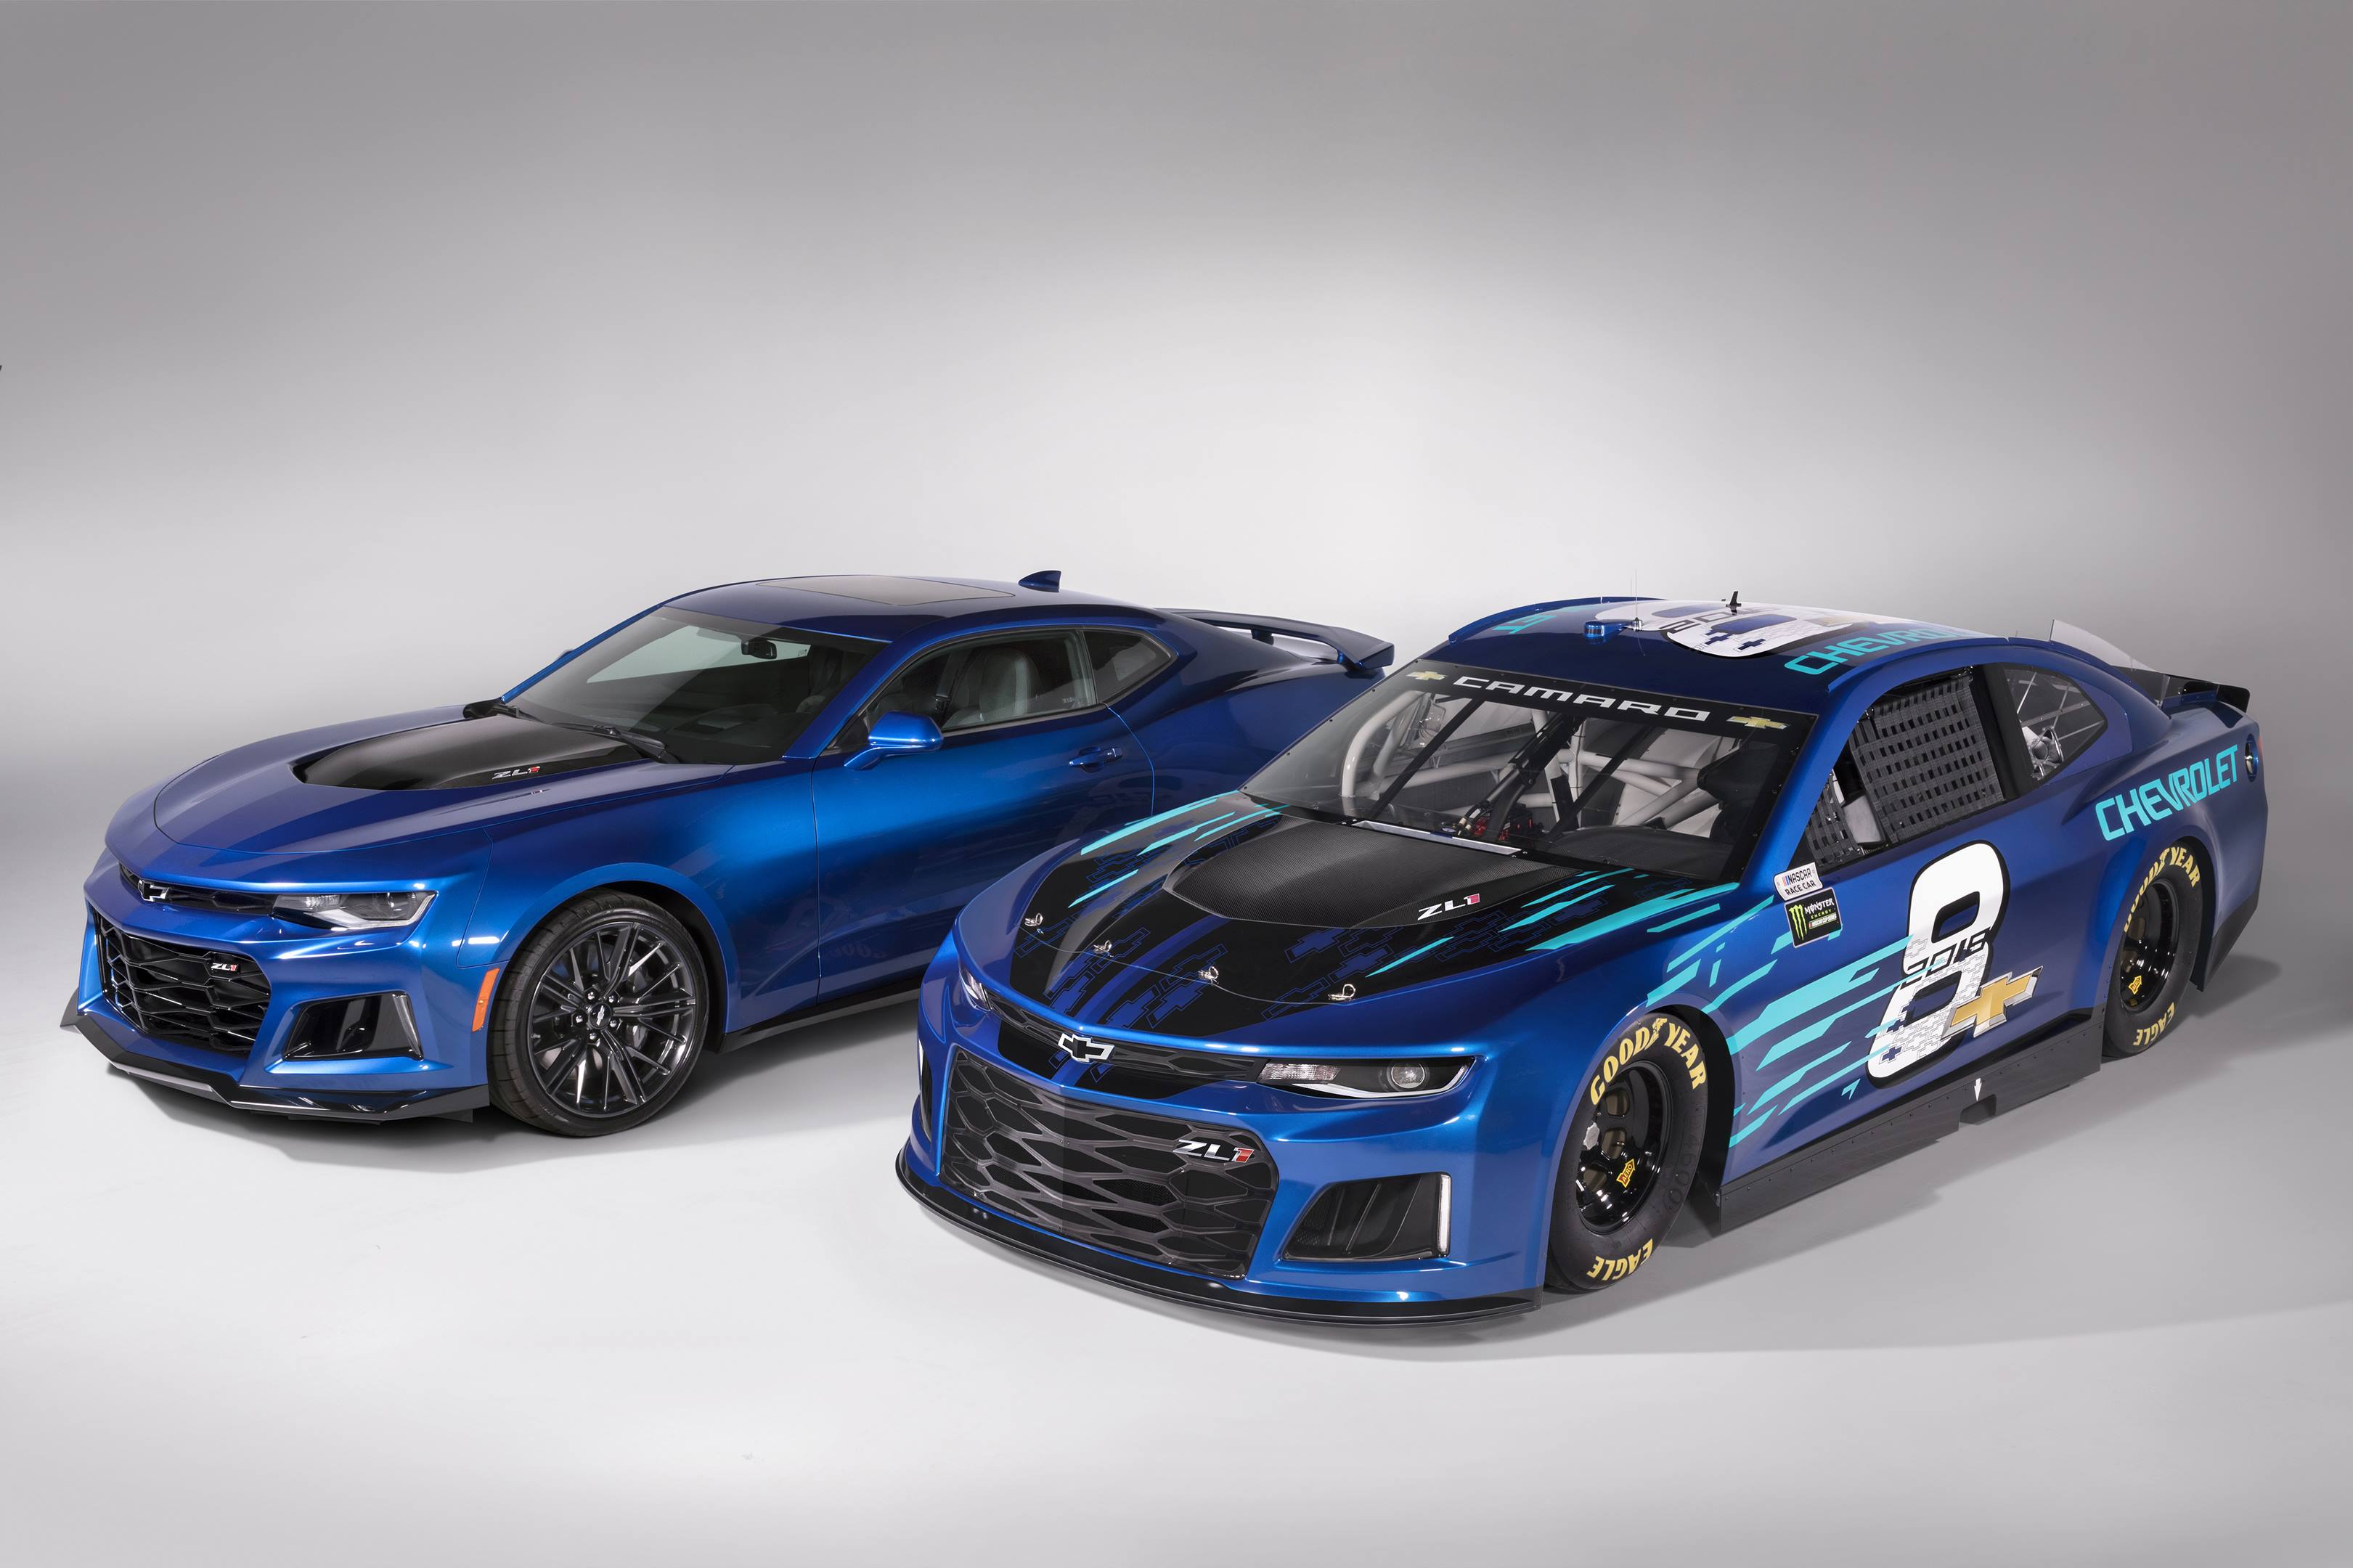 2018 Chevrolet Camaro ZL1 NASCAR cup race car and the Camaro ZL1-R